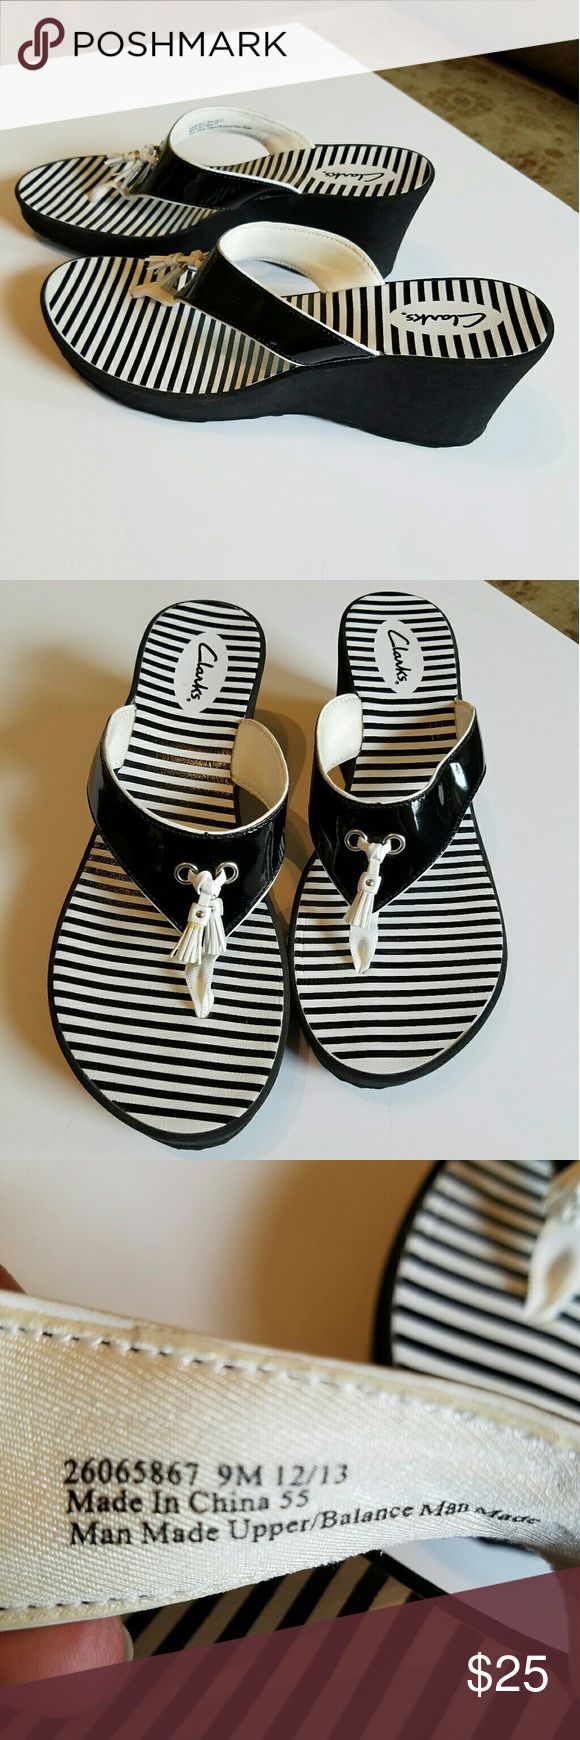 Clark's black and white sandals. NWOT Ready for summer.   Black with white accent. New without tags Clarks Shoes Sandals